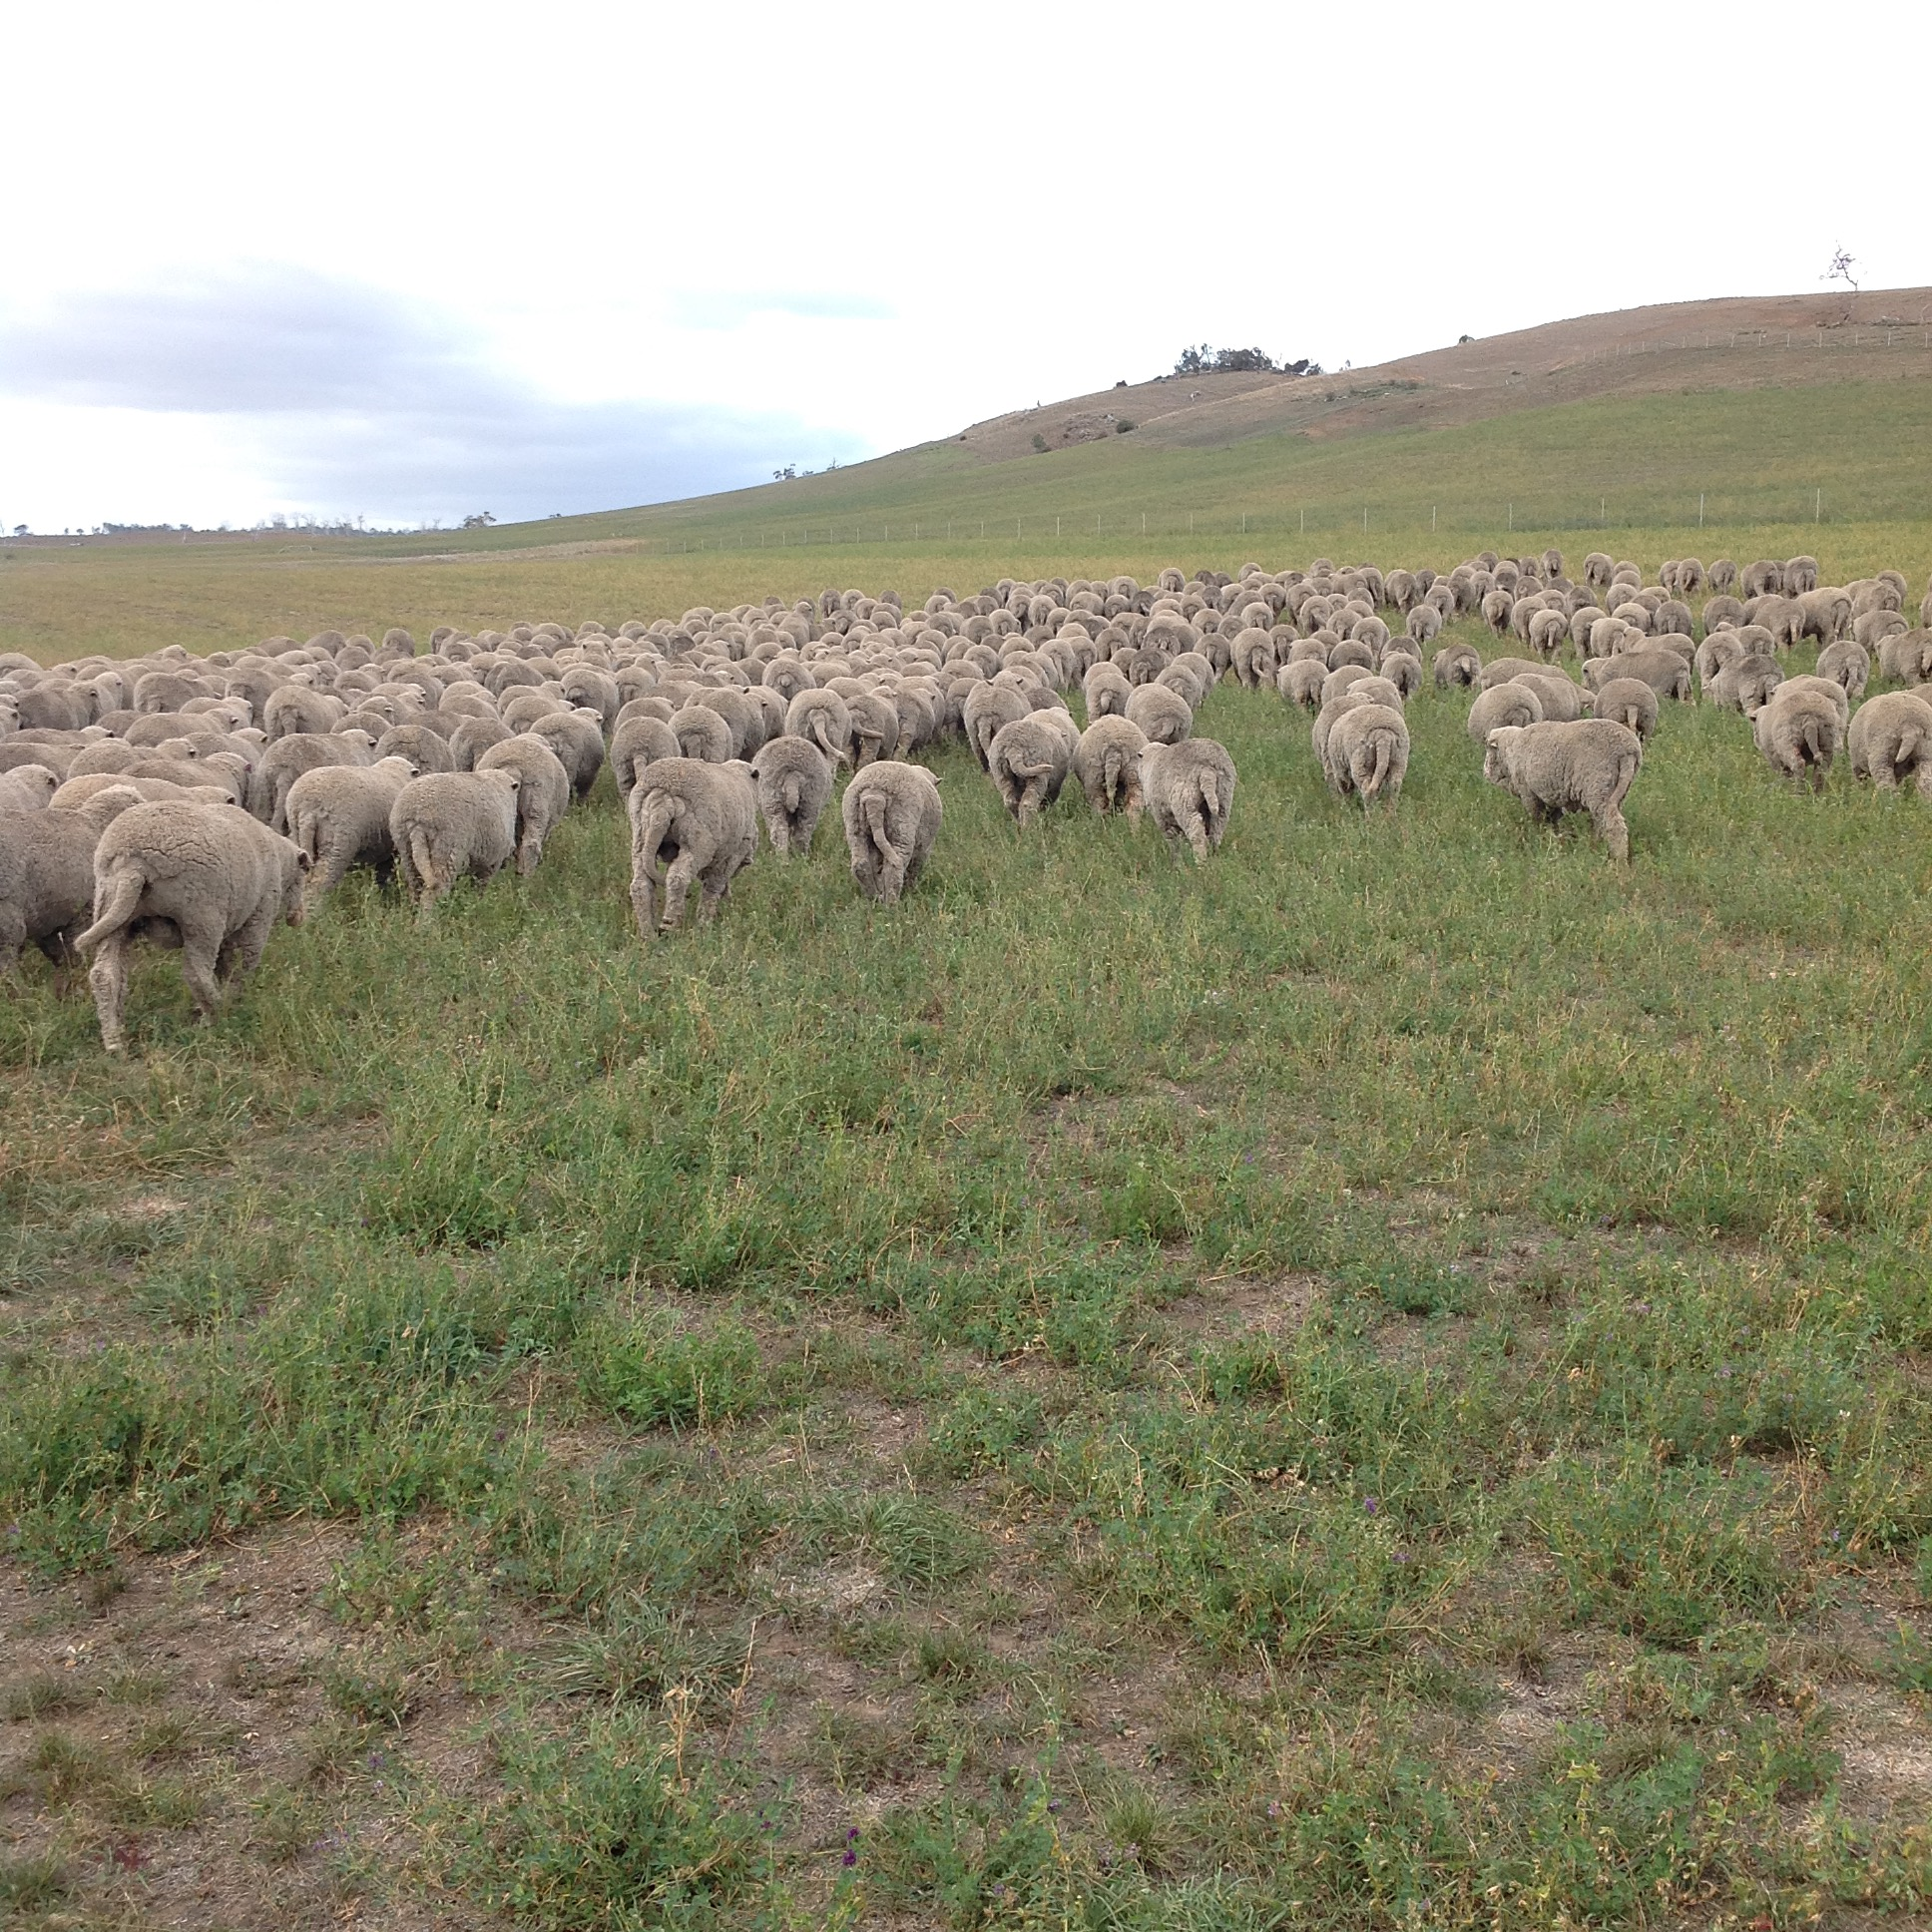 P2: Into the lucerne. Heads down and grazing immediately.